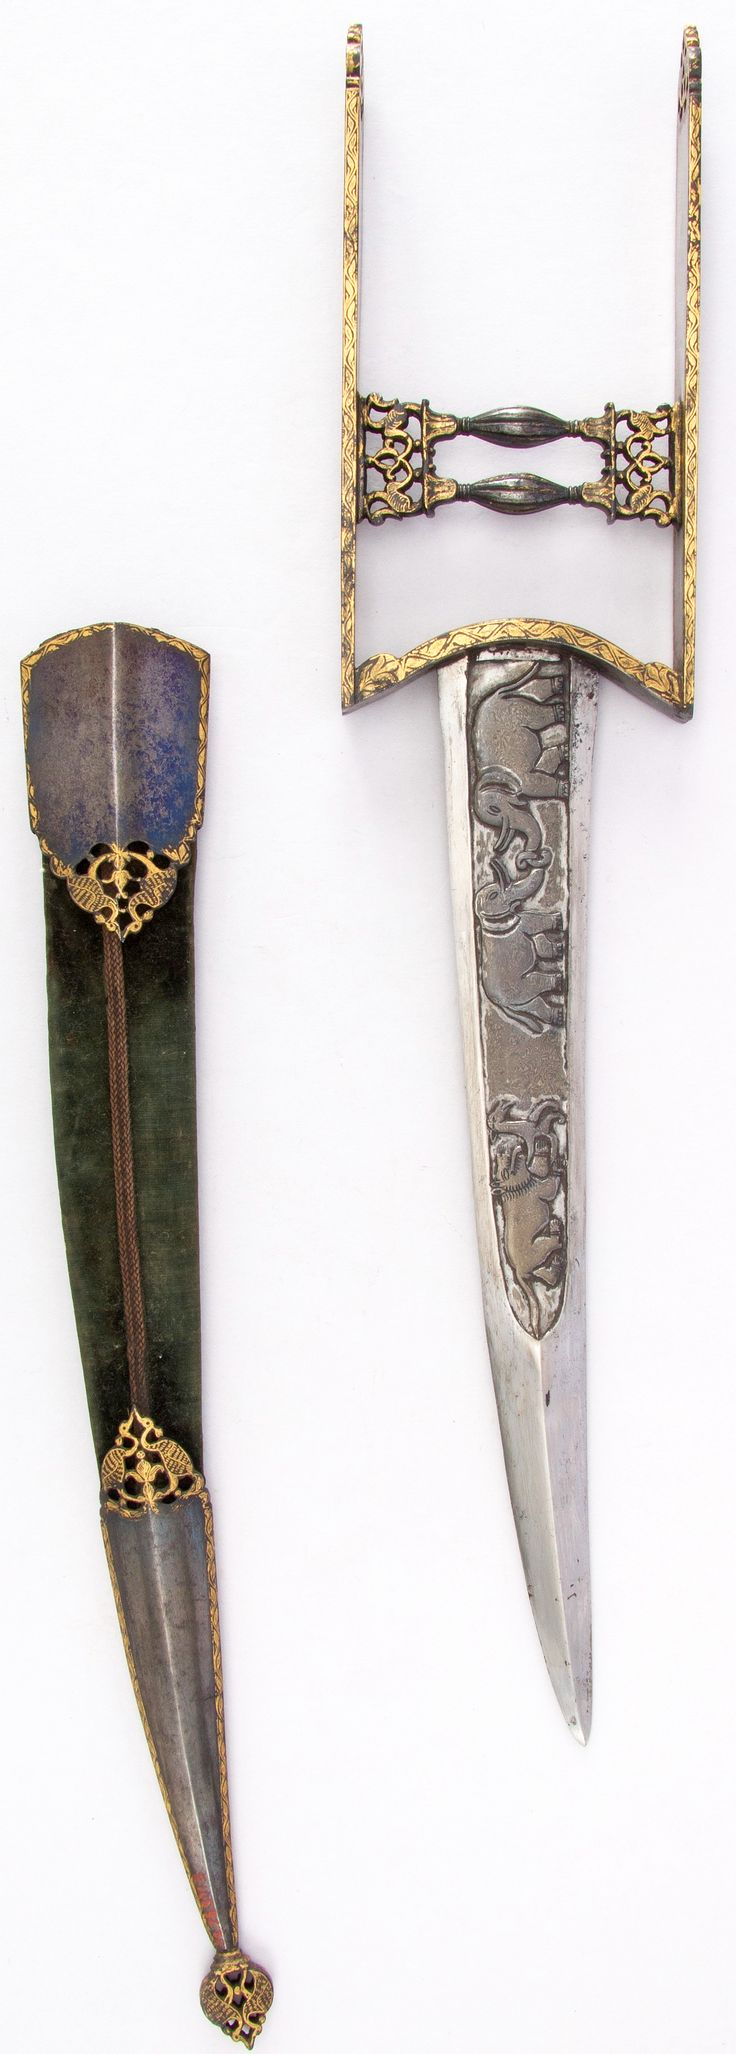 Indian katar, 18th century, curved blade, H. with sheath 21 1/4 in. (54 cm); H. without sheath 17 7/8 in. (45.4 cm); W. 3 5/8 in. (9.2 cm); Wt. 17.4 oz. (493.3 g); Wt. of sheath 5.1 oz. (144.6 g), Met Museum, Bequest of George C. Stone, 1935.